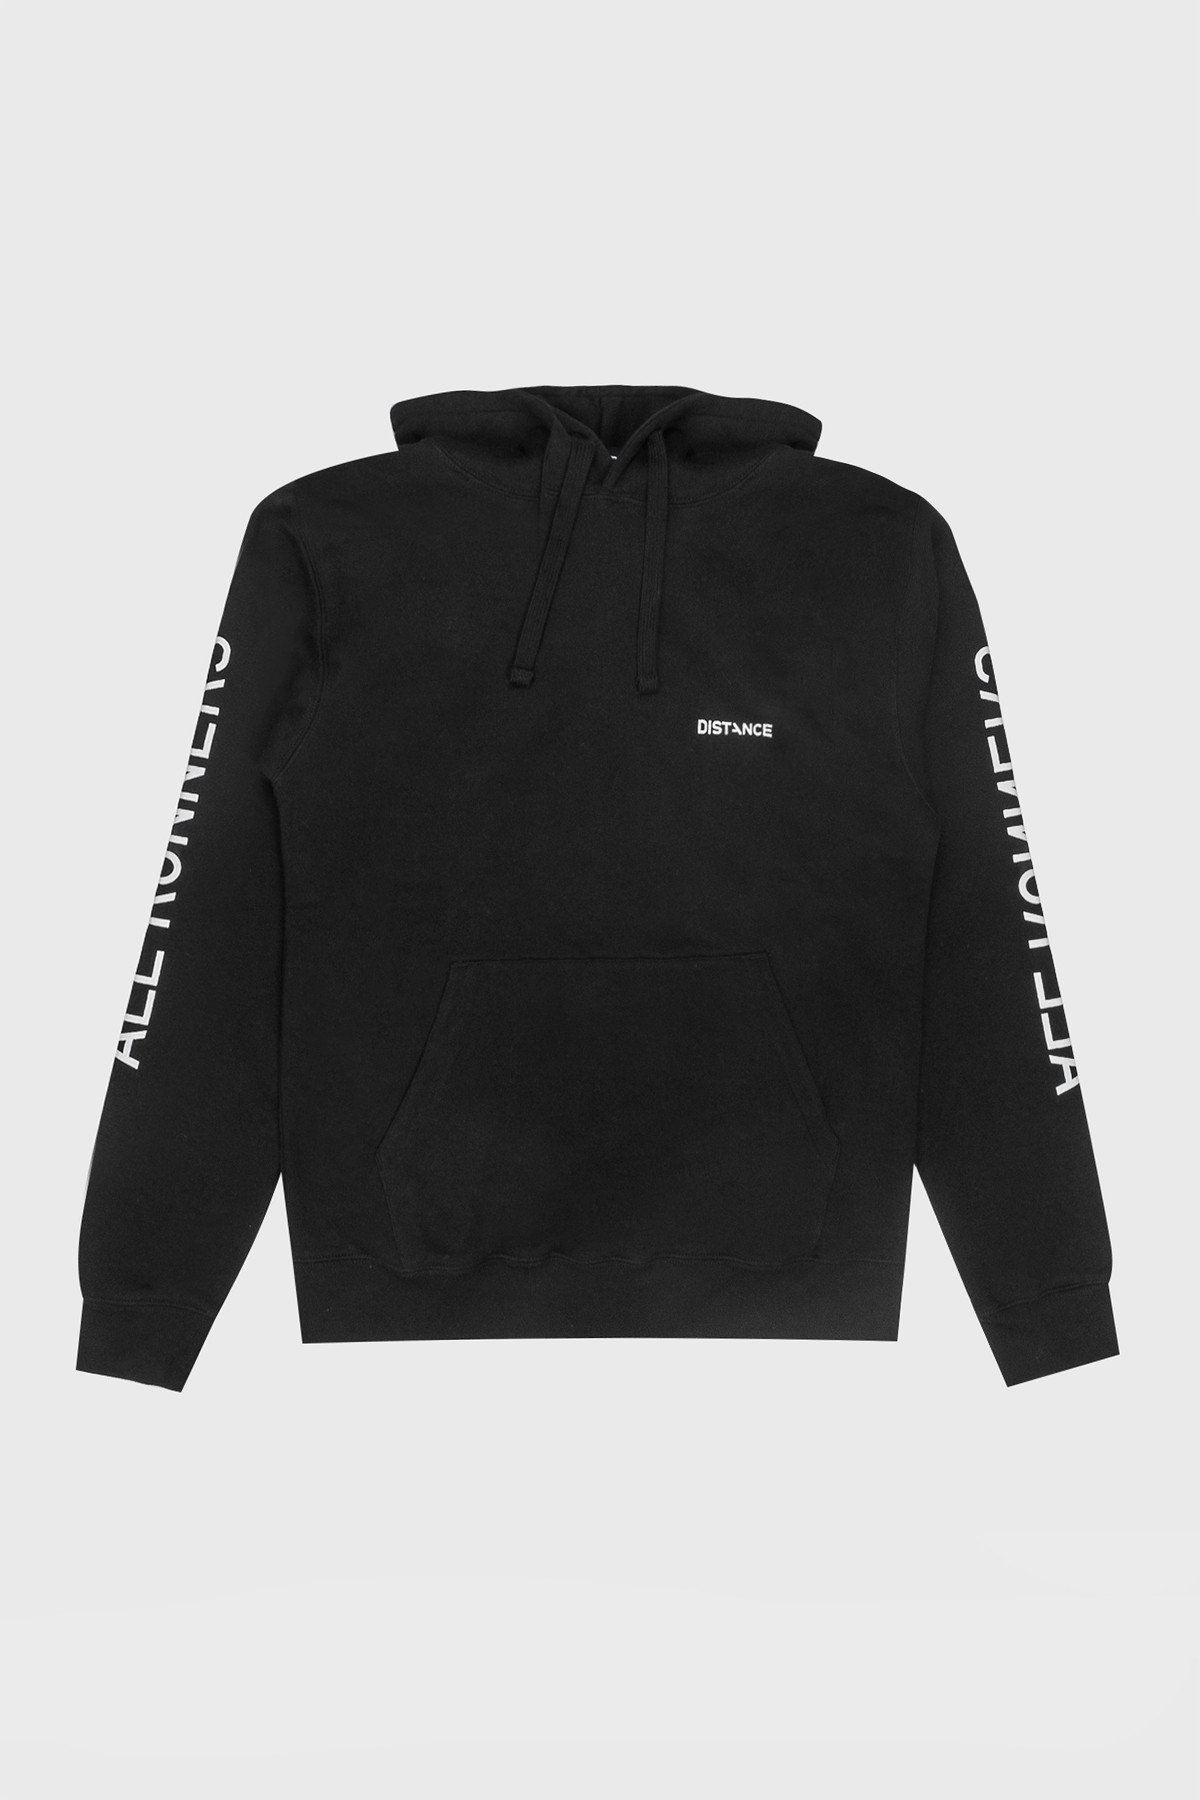 Distance - Classic Hoodie - Black white